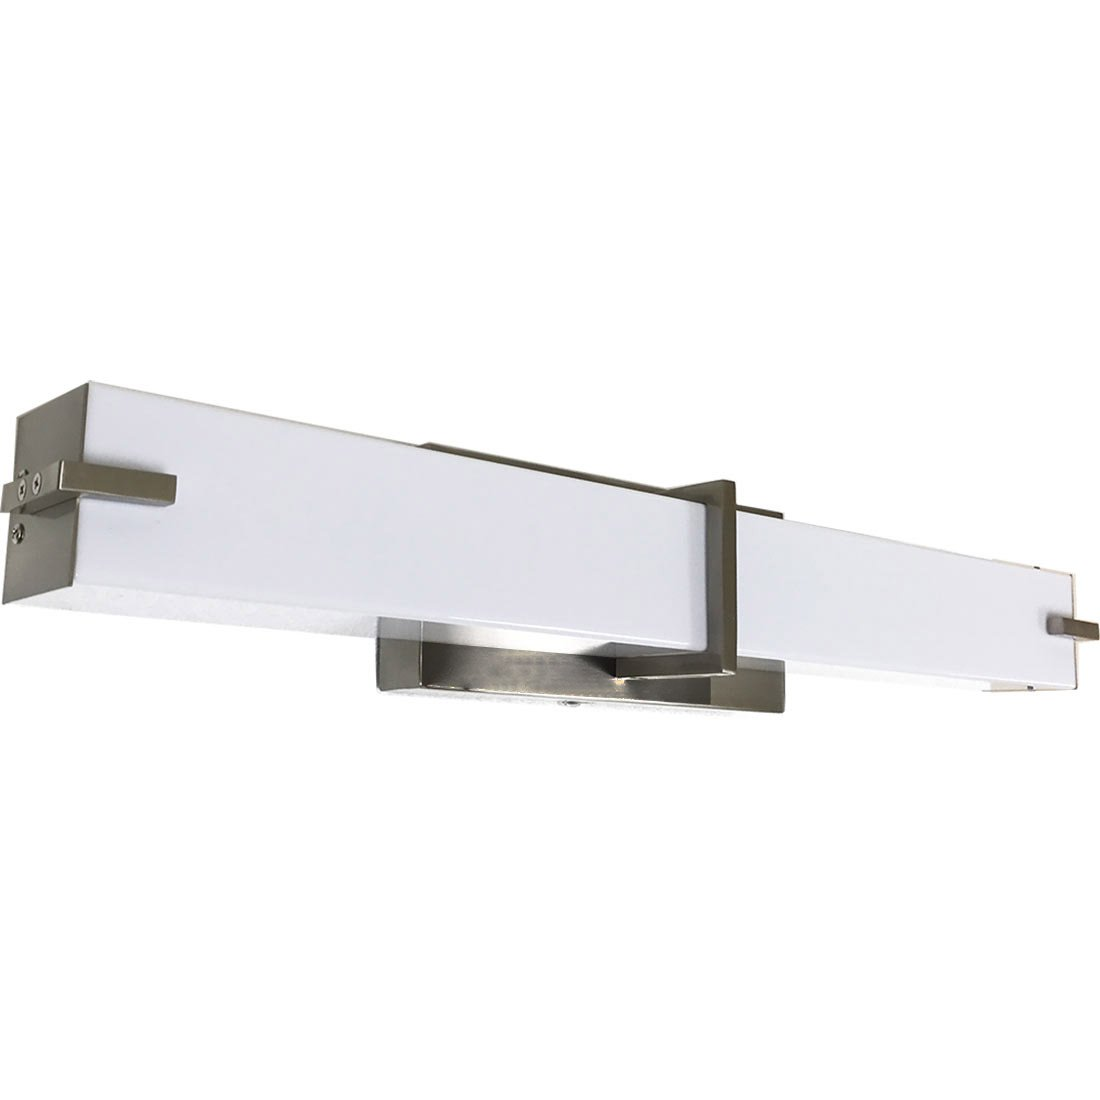 New squared modern frosted bathroom vanity light fixture contemporary sleek dimmable led rectangular bar design vertical or horizontal 24